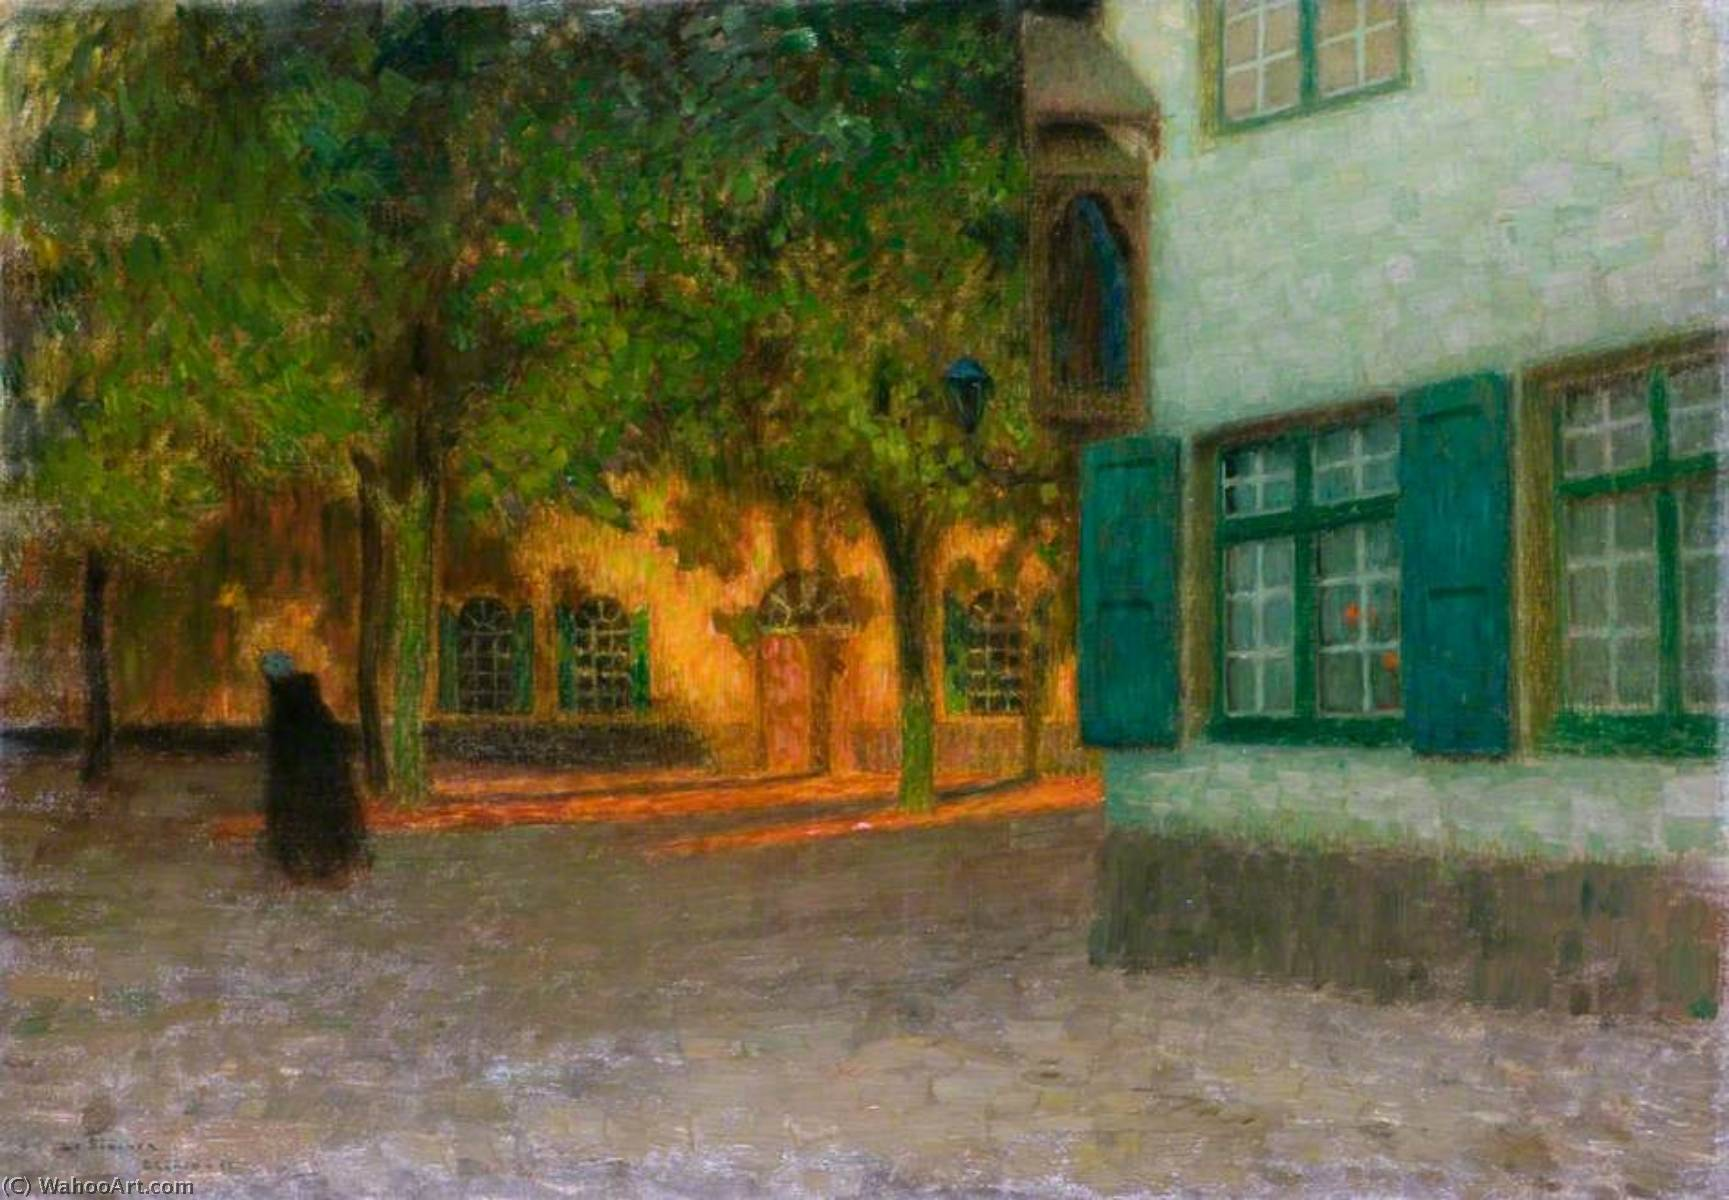 Wikoo.org - موسوعة الفنون الجميلة - اللوحة، العمل الفني Henri Eugène Augustin Le Sidaner - The House with the Green Shutters (Beguinage. Maisons à contre jour, Bruges)